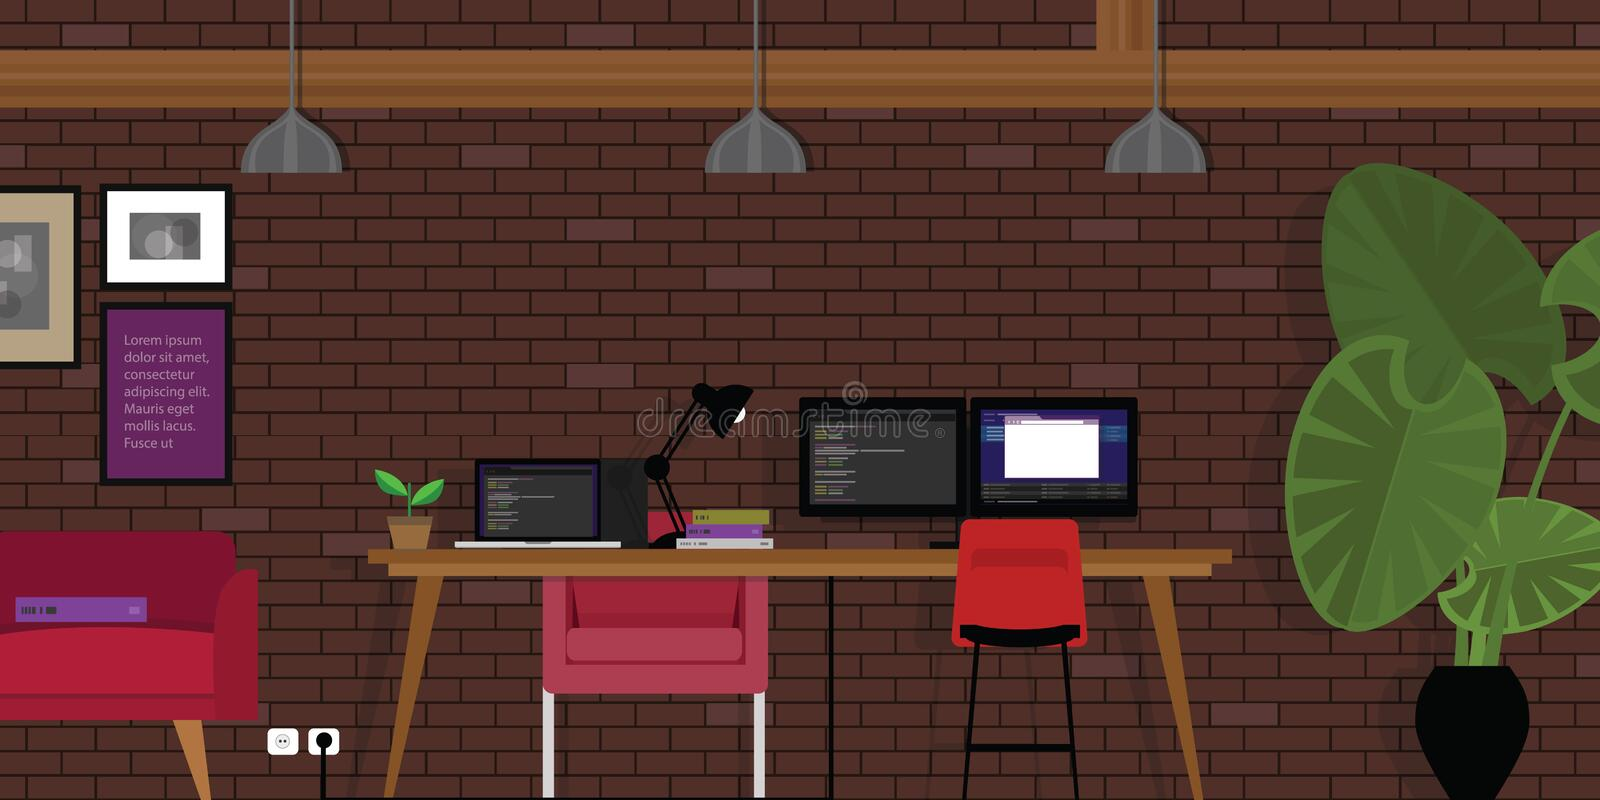 Start-up open works-pace co-working office industrial style with programming coding desk and brick royalty free illustration